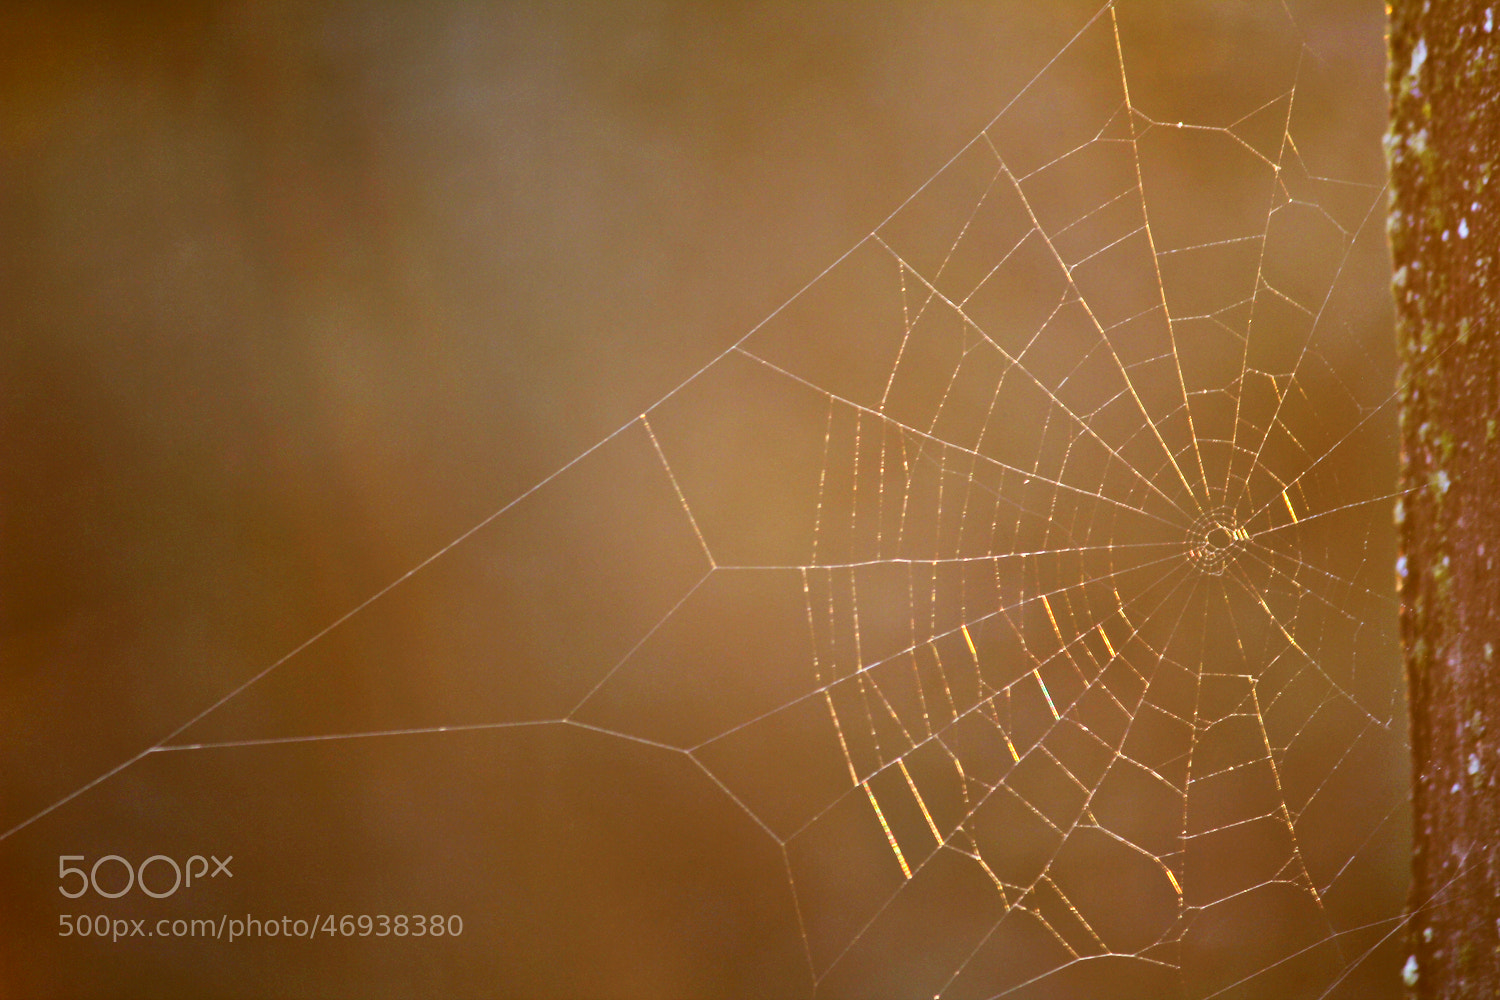 Photograph spider by Igor Arsovic on 500px